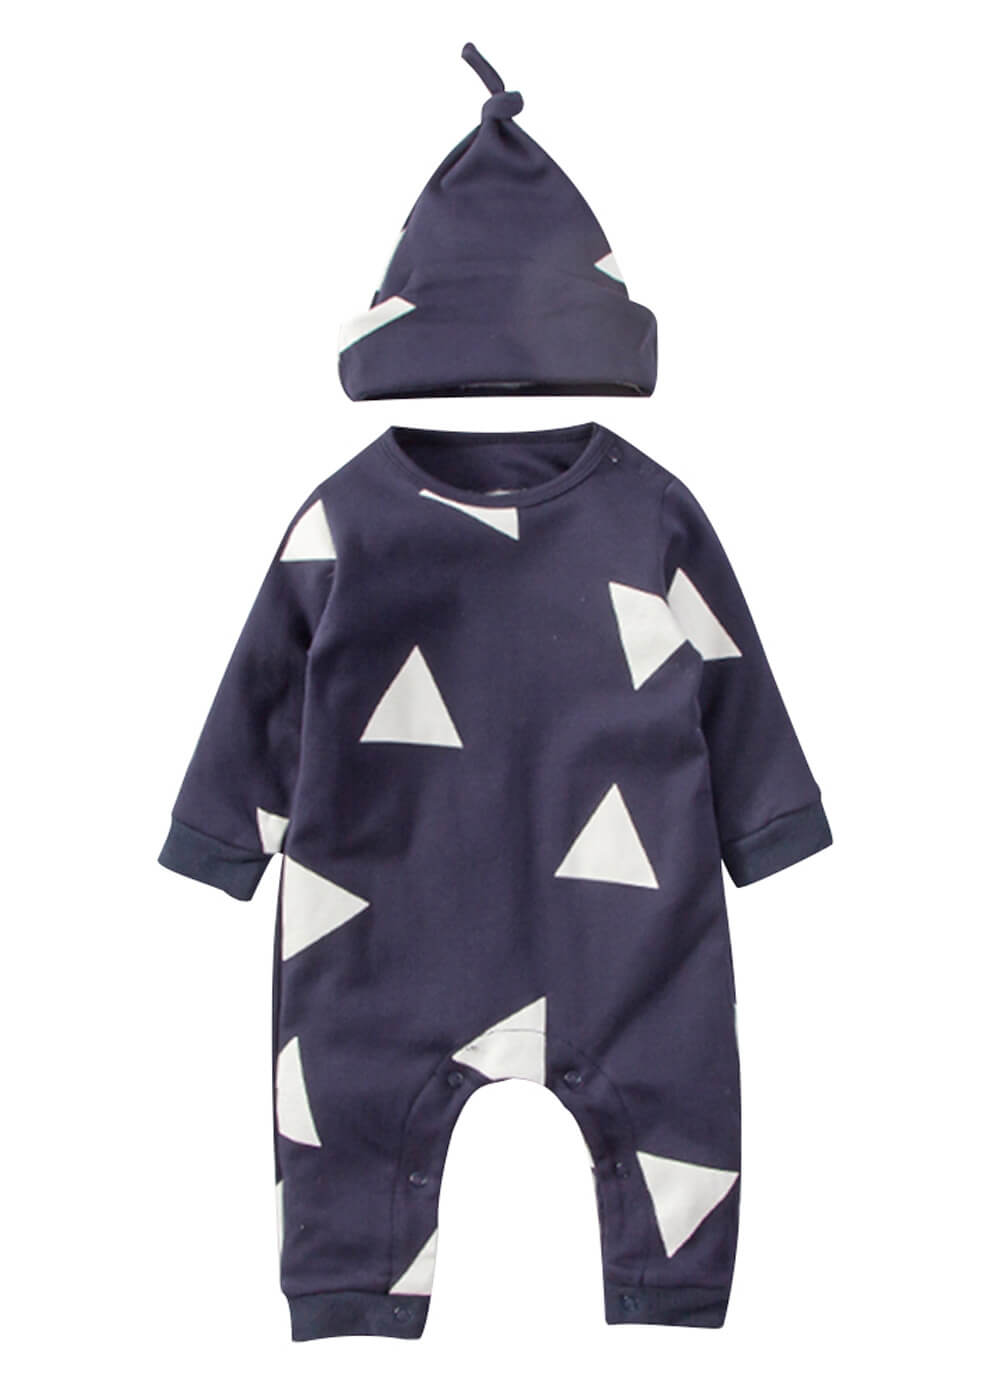 Triangle Print Newborn Baby Onesie   Hat in Blue from Lait   Co d1ddb2b8f91